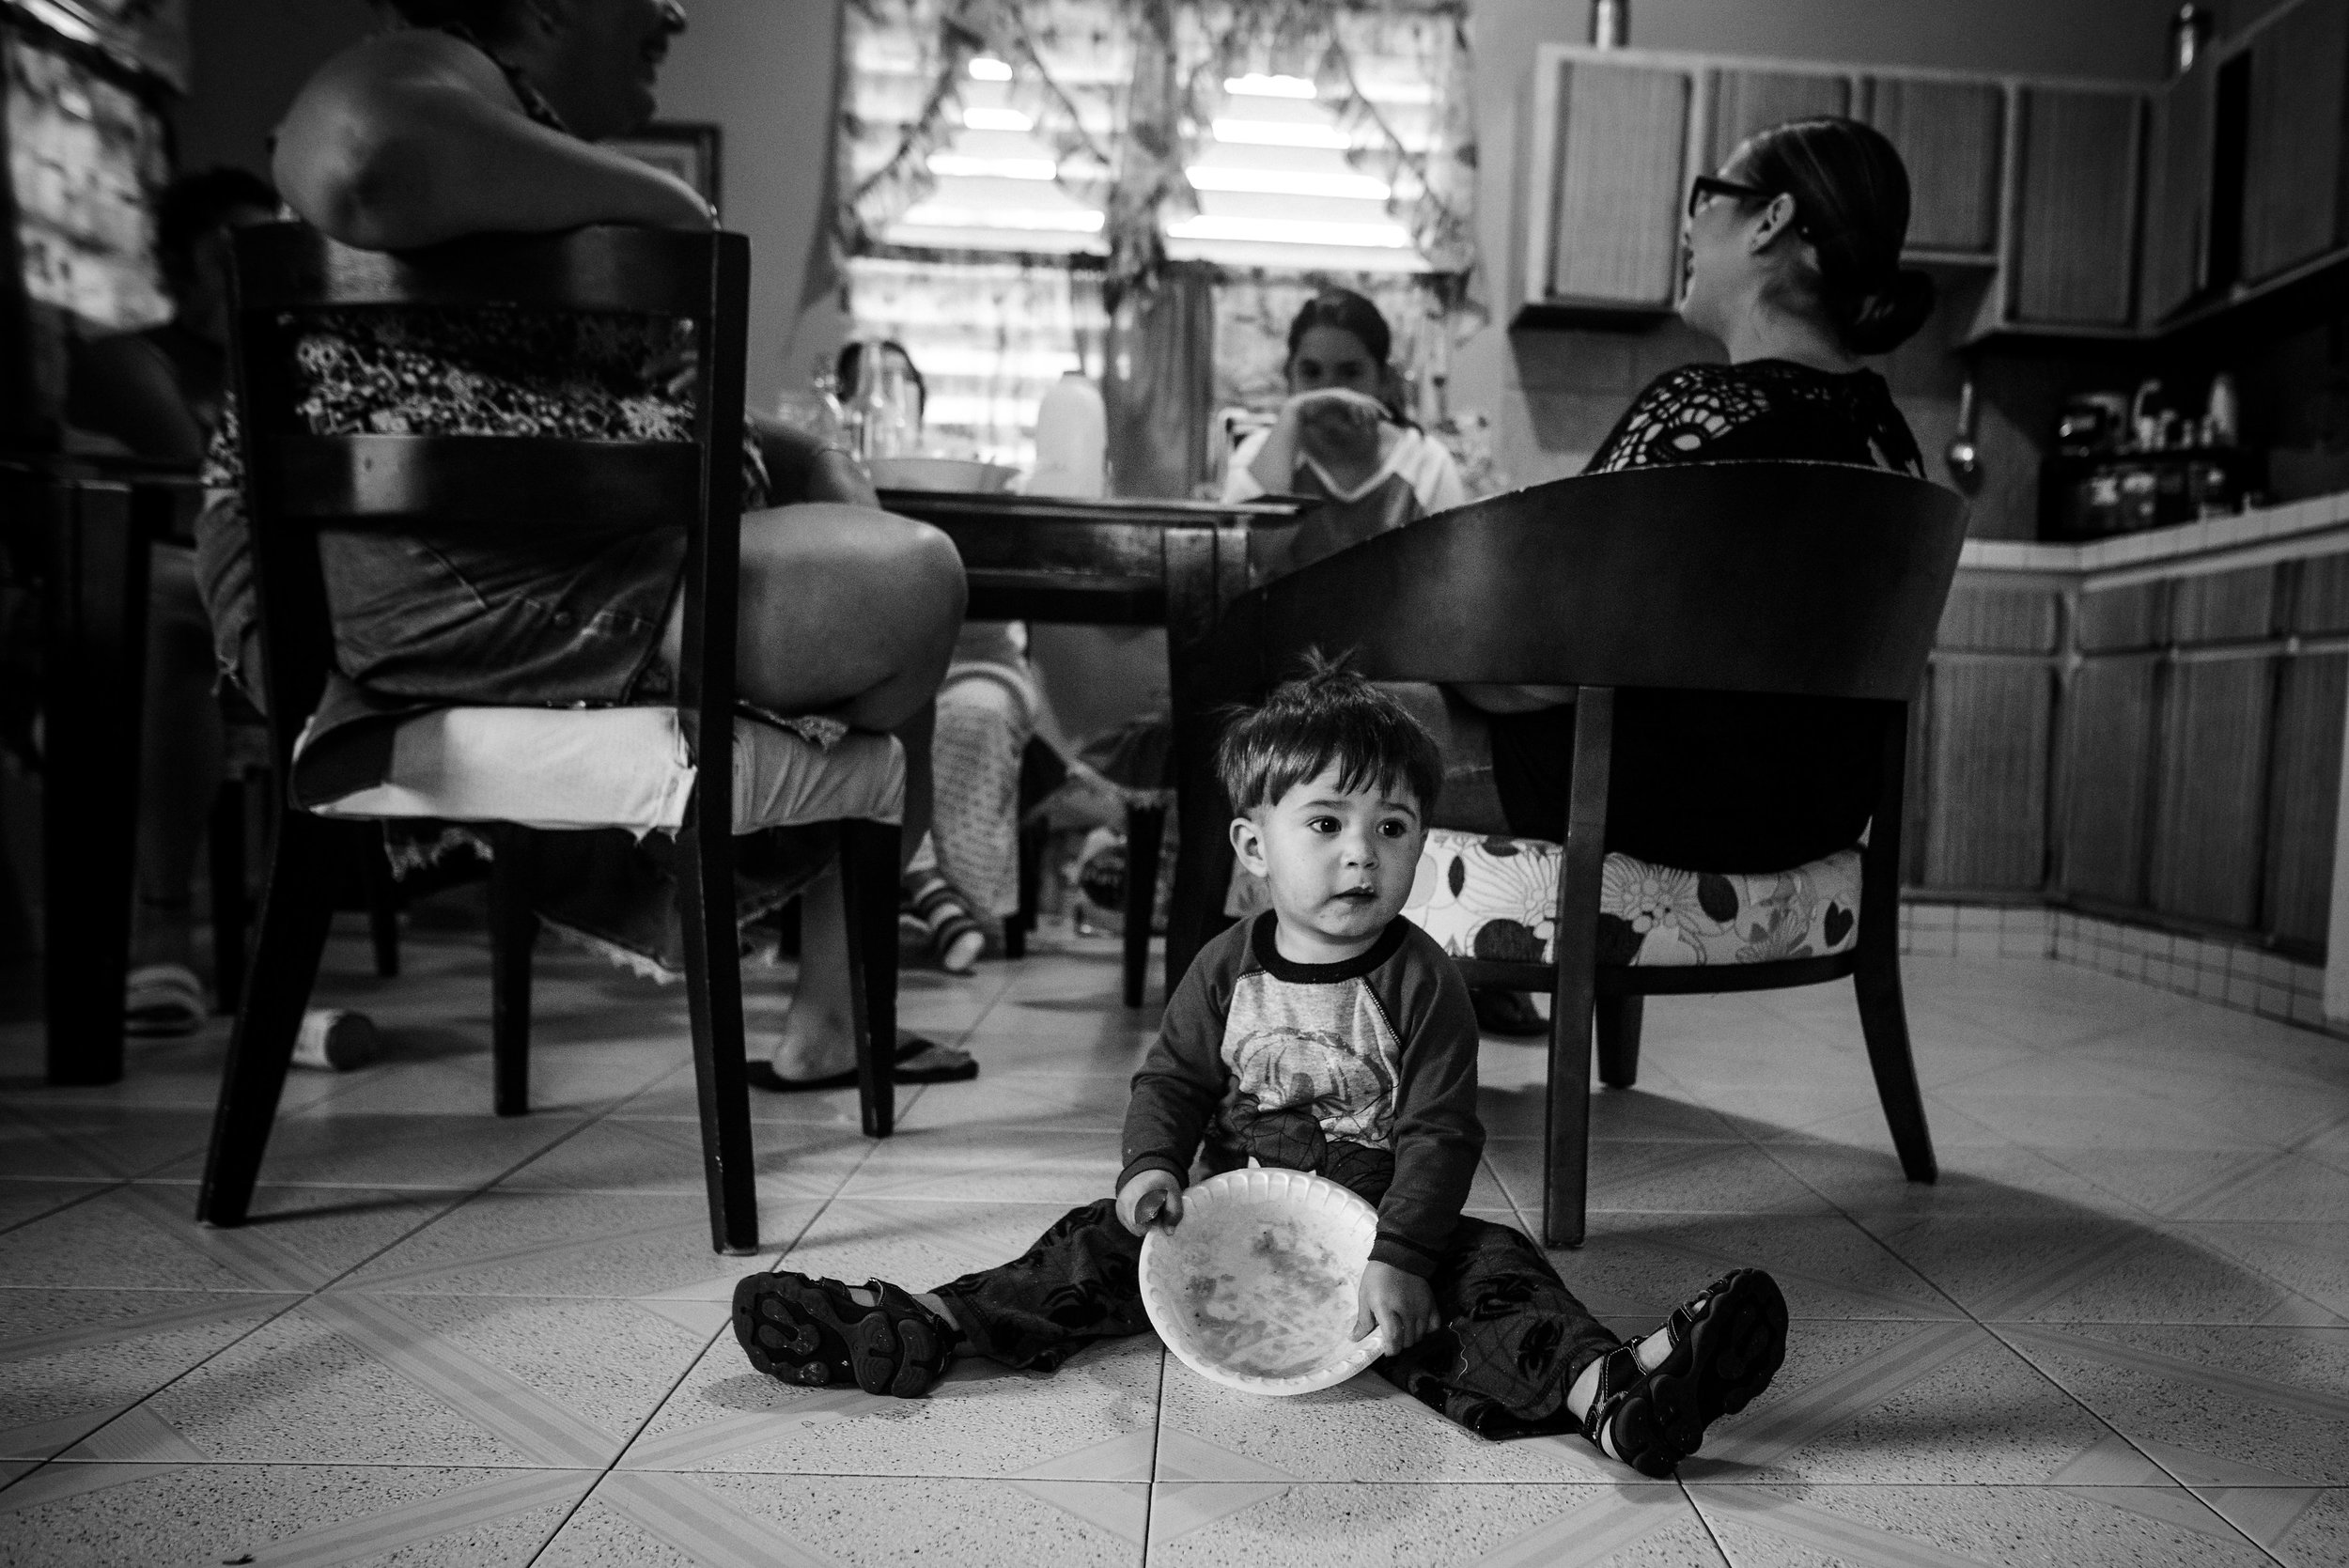 Grise (far right) sits at the table with her mother and sister while her nephew finishes breakfast from a paper plate. At the time this was photographed, there was no running water and so eating from disposable utensils saved the purchased water.Photo: Aniya Emtage Legnaro